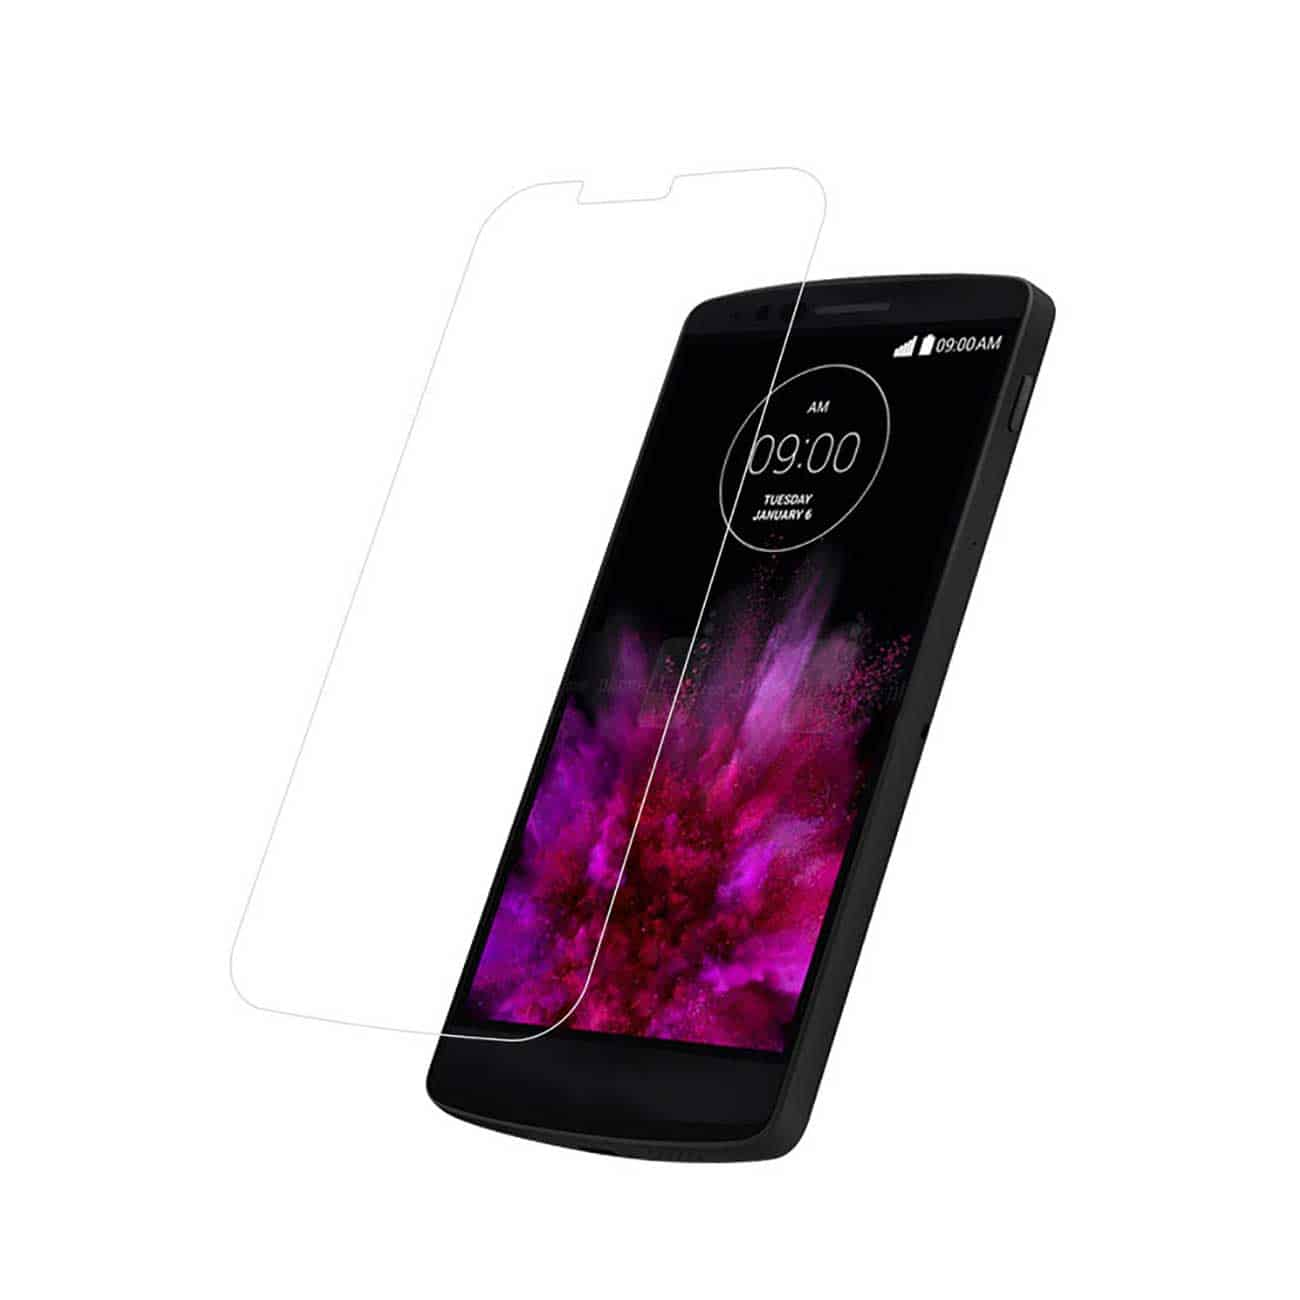 LG G FLEX 2 TEMPERED GLASS SCREEN PROTECTOR IN CLEAR